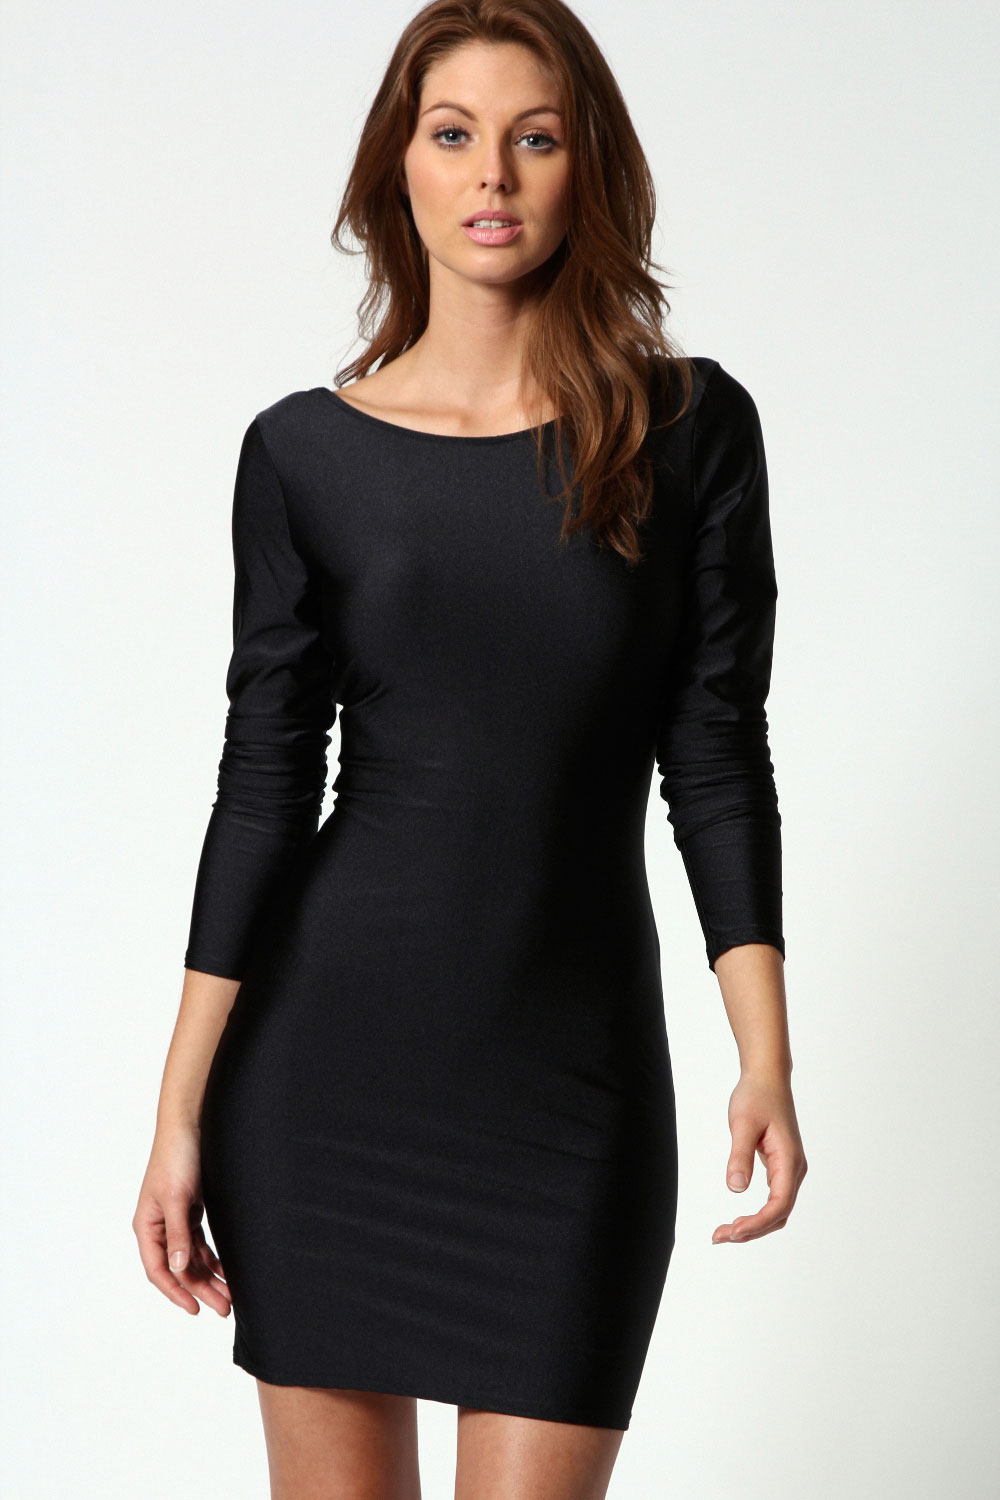 f40edcb69a5 black long sleeve bodycon dress - Women s Dresses